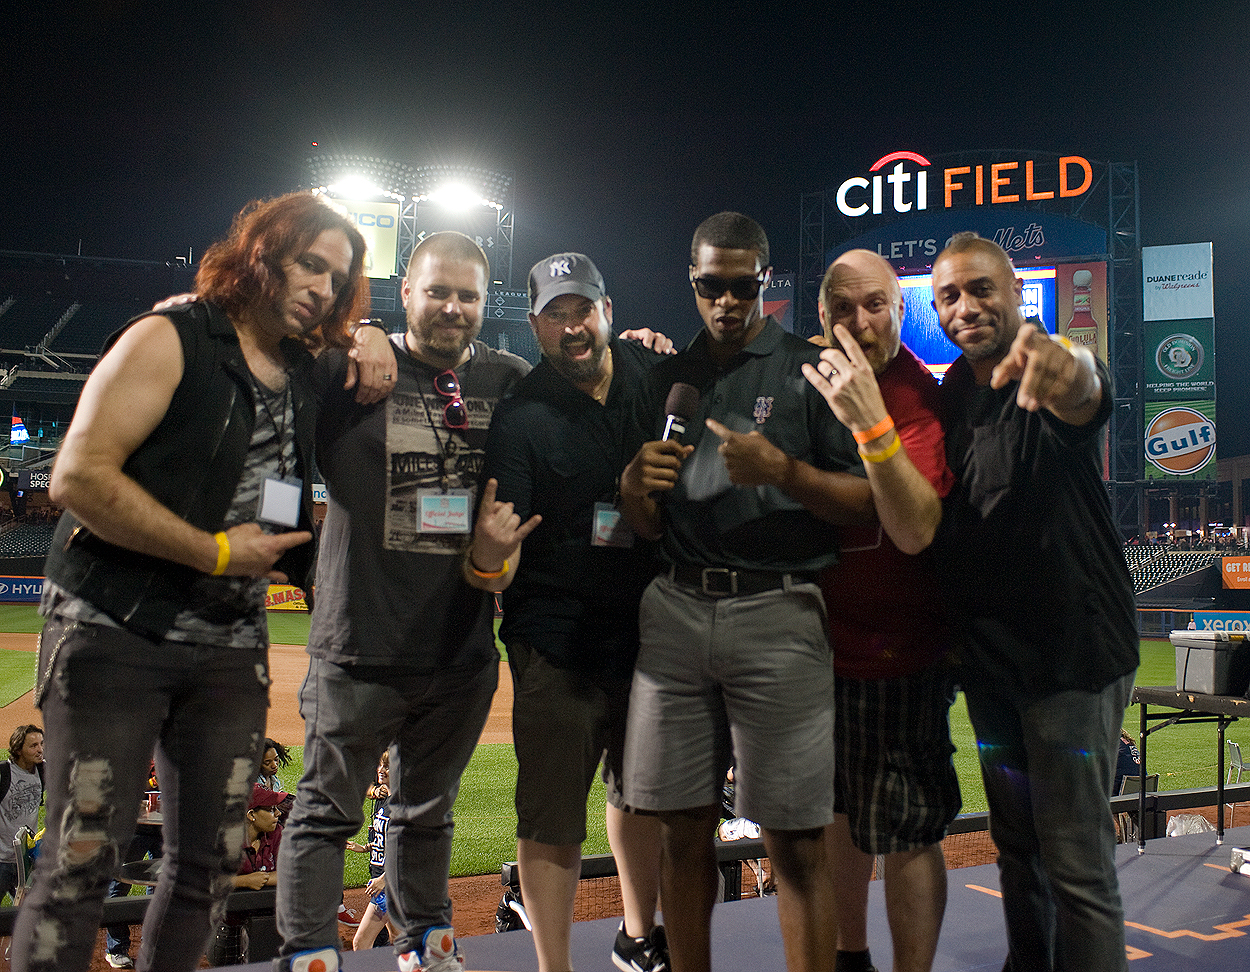 bacon_and_beer_classic_nyc_citi_field_2014_burger_conquest_winners_photos_information_57